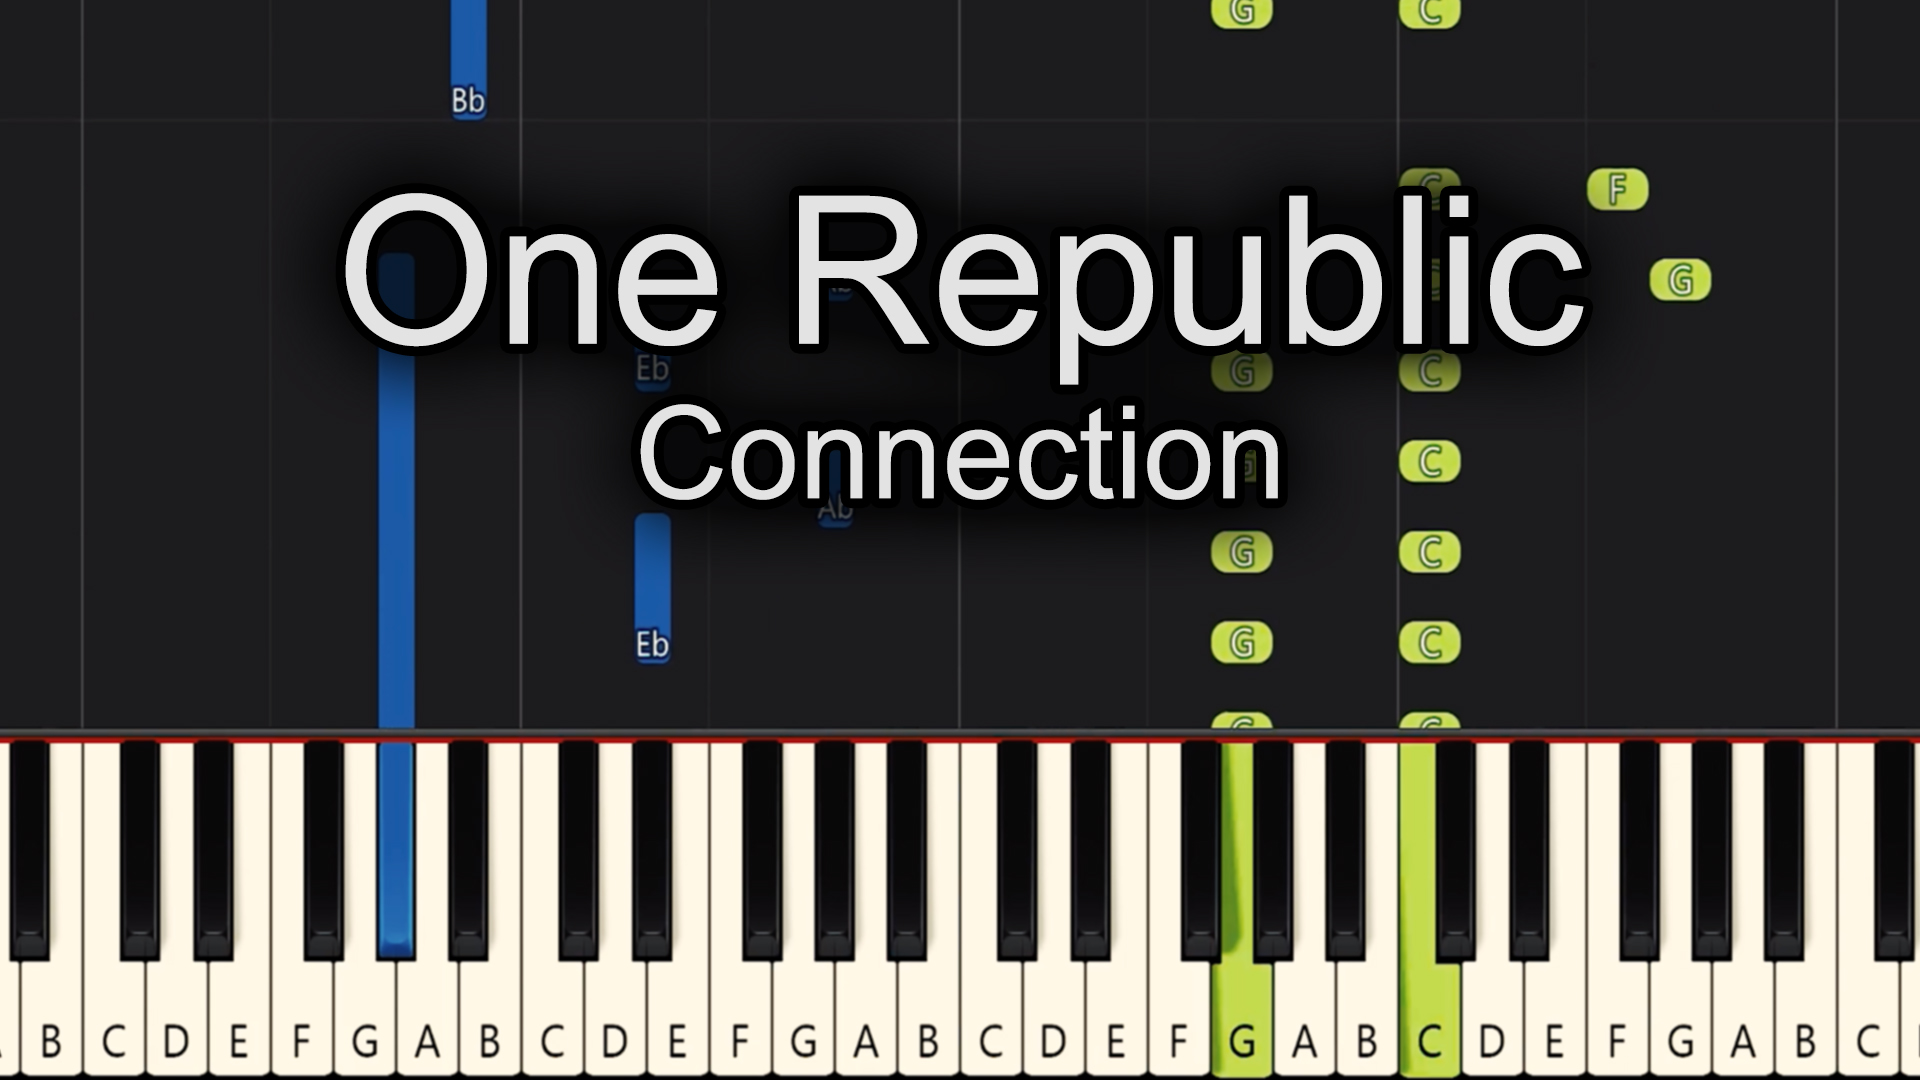 One Republic – Connection – Advanced